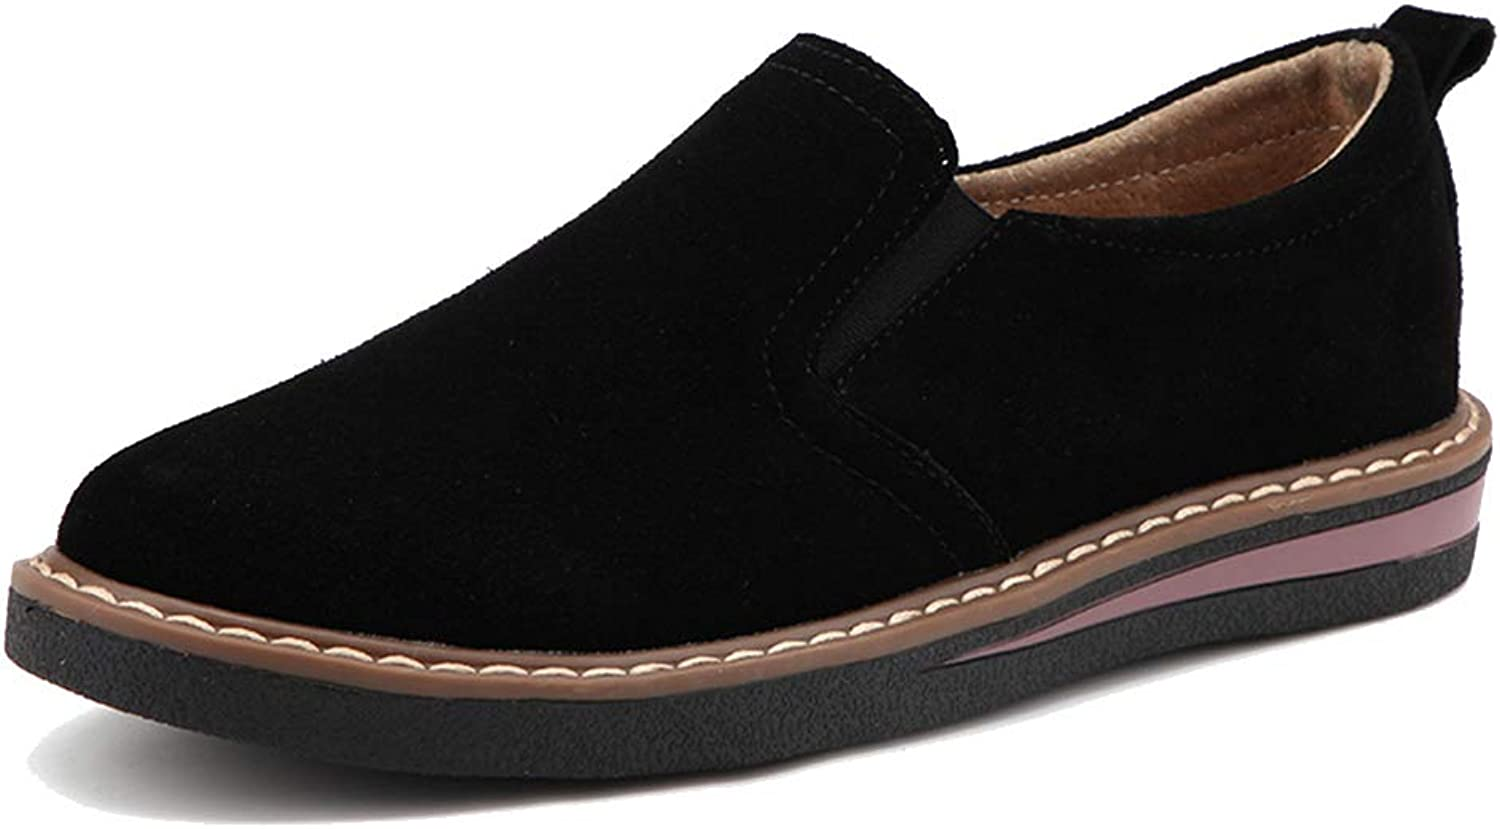 WodCht Nice Spring Autumn Women's Flats Genuine Leather shoes Woman Lady Loafers Slip On Suede shoes